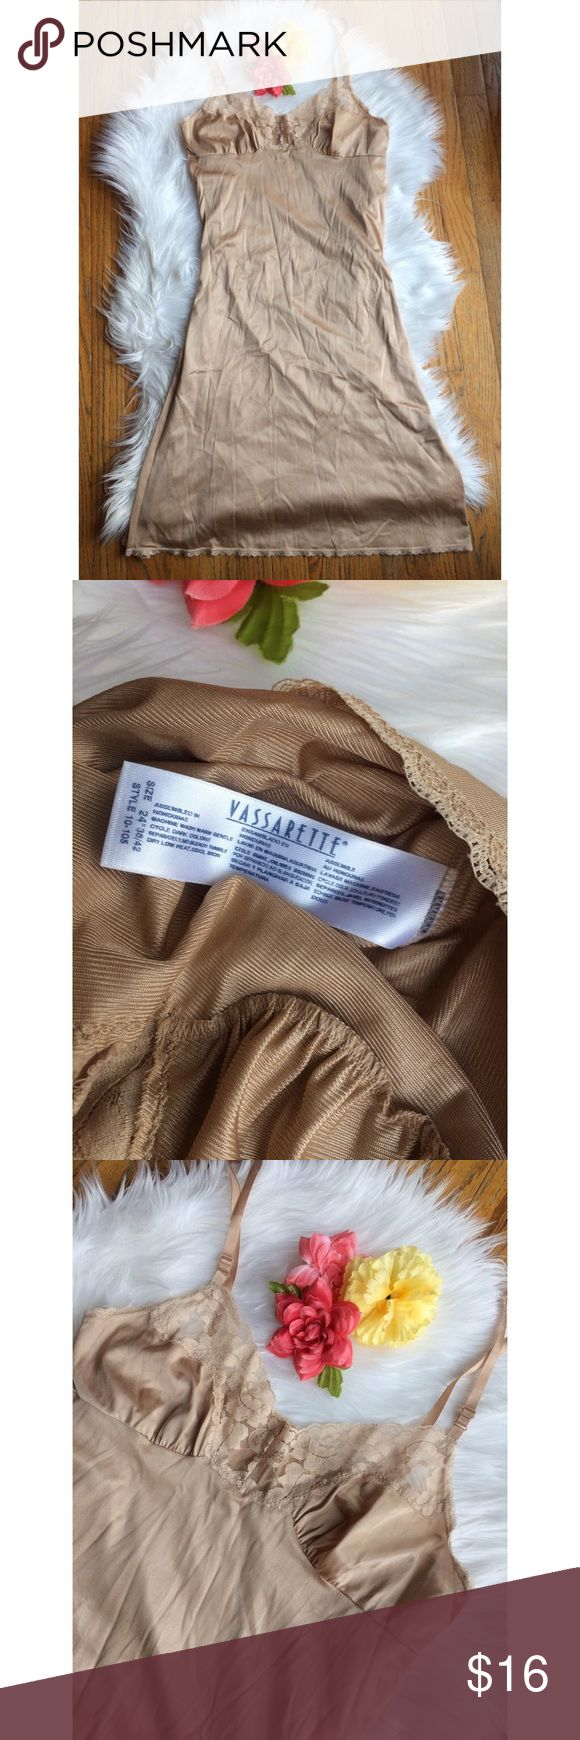 Vintage Taupe Lace Lingerie Slip 🍂 Beautiful vintage 90's lingerie slip by Vassarette! Features a classic nude/taupe color with floral lace accents. Has a longer midi-length fit, I'm 5'2 and it goes a little past my knees! Looks amazing paired with your favorite tee or turtleneck or for wearing to bed at night! Soft, silky feel. In great condition! Fits like a size small/medium :)  Measurements: Straps are adjustable! Total Length (bottom of strap to bottom hem)- 33.5 inches  Bust- 16.5…